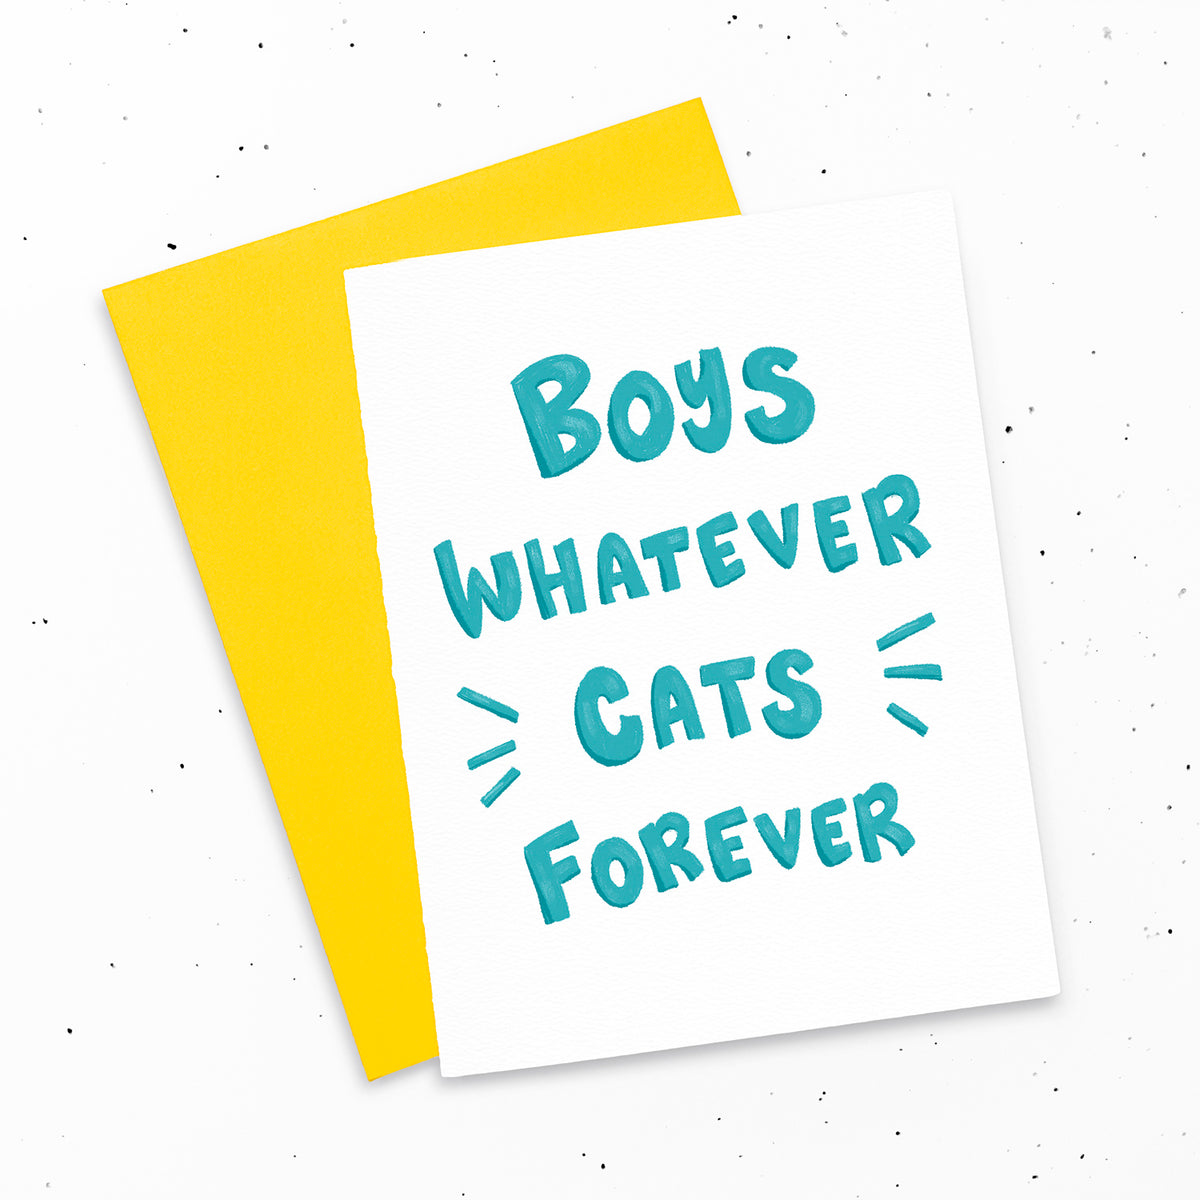 Boys Whatever Cats Forever ~ Typographic greeting card for crazy cat ladies and single gals around Valentine's Day